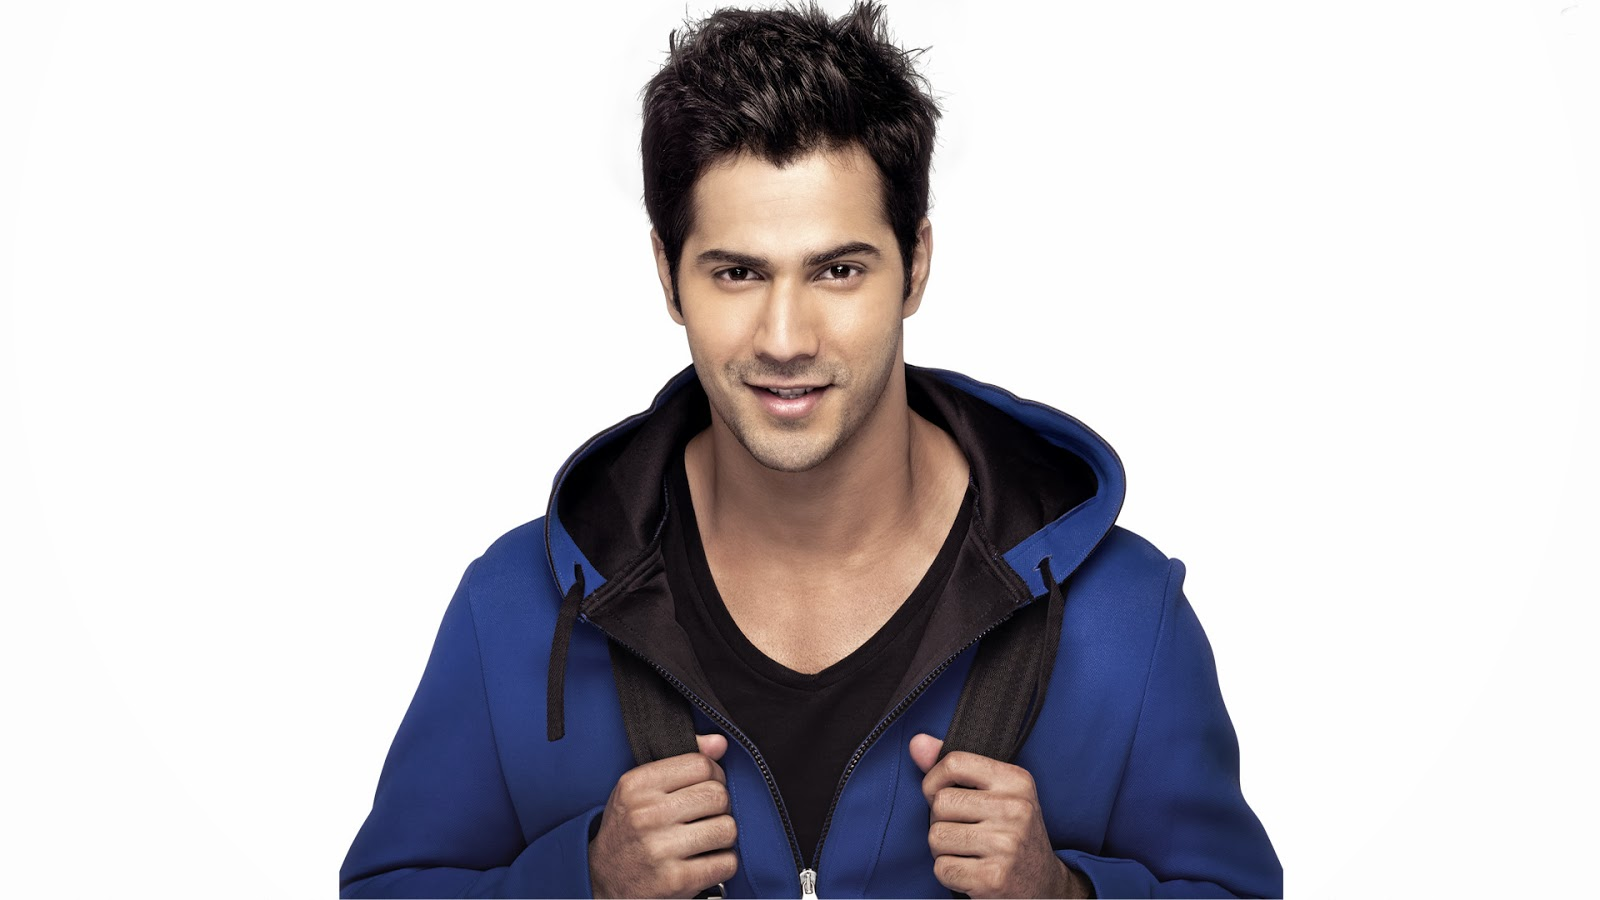 Bollywood Actors Walpaper In 2080p: Varun Dhawan HD Wallpapers • PoPoPics.com